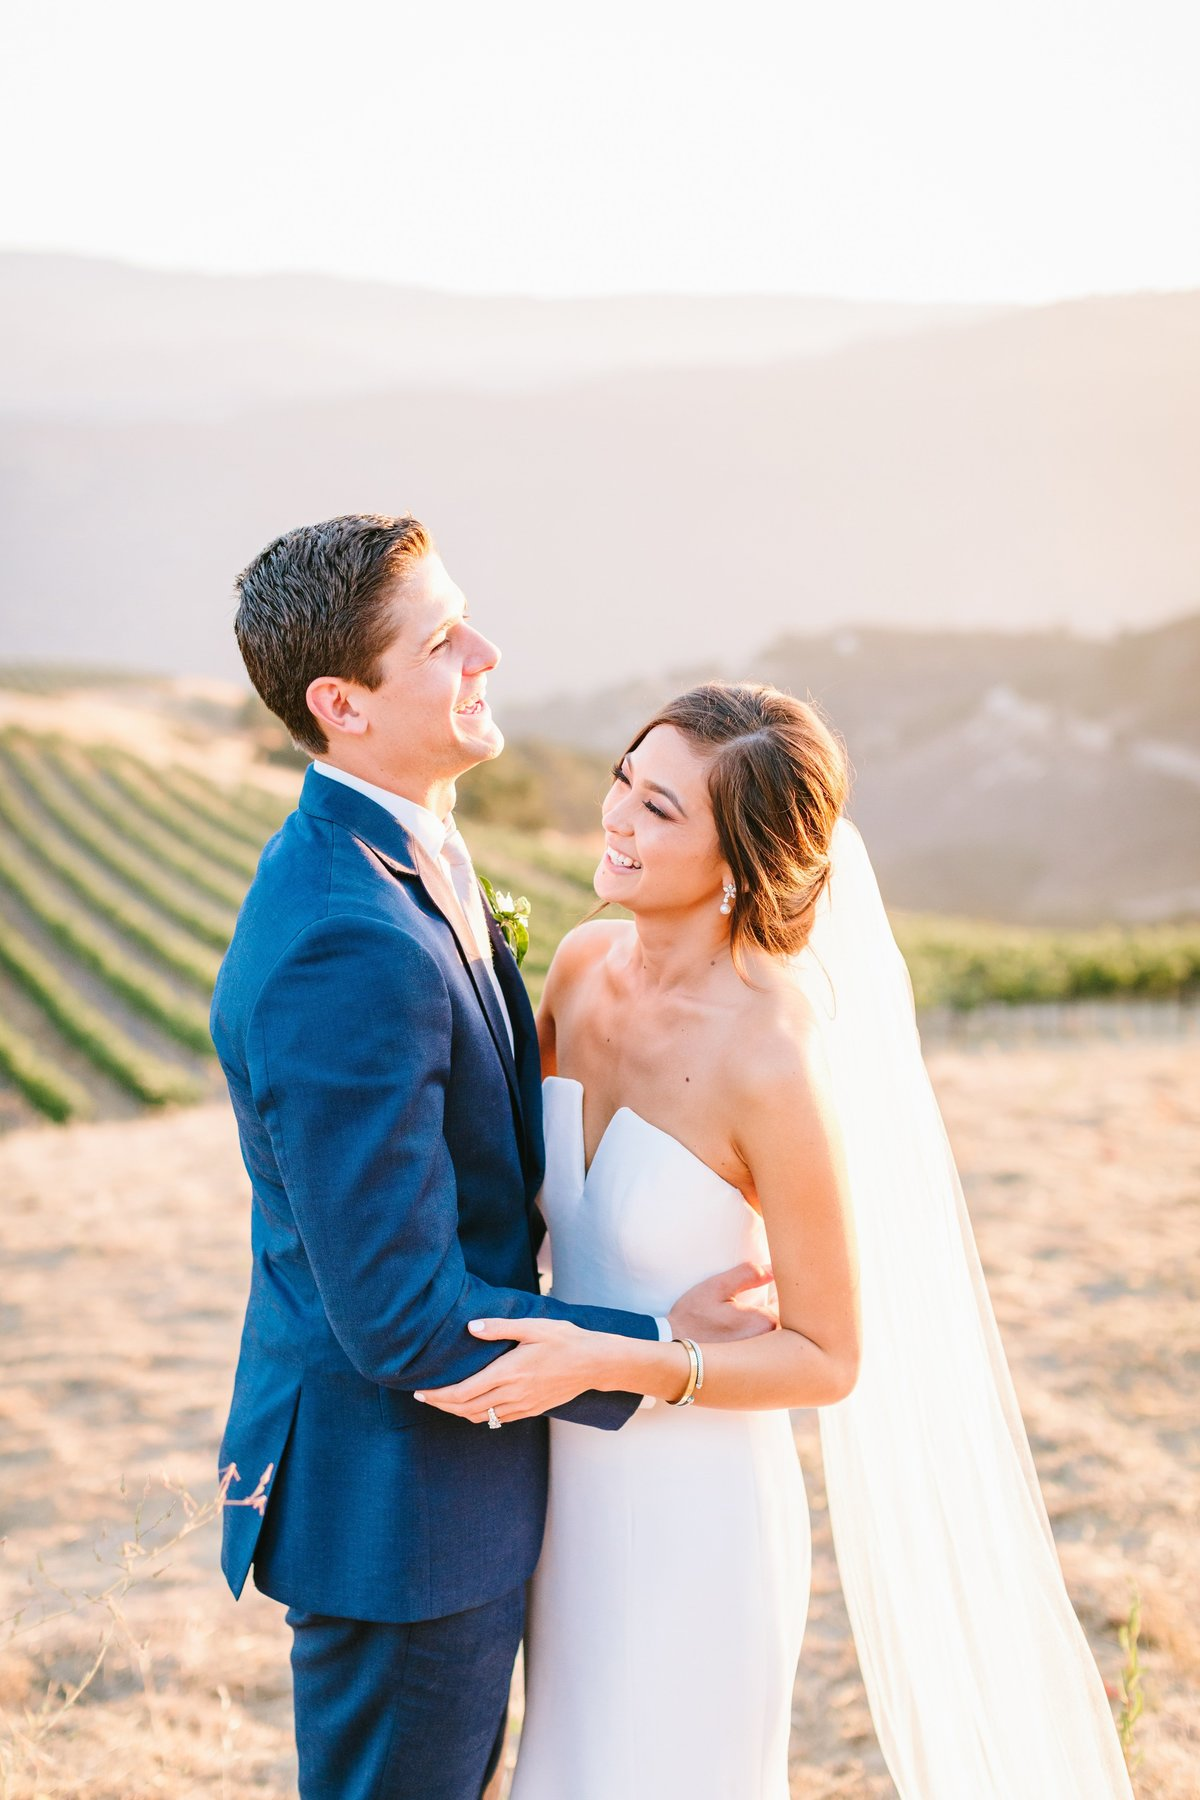 Best California Wedding Photographer-Jodee Debes Photography-315